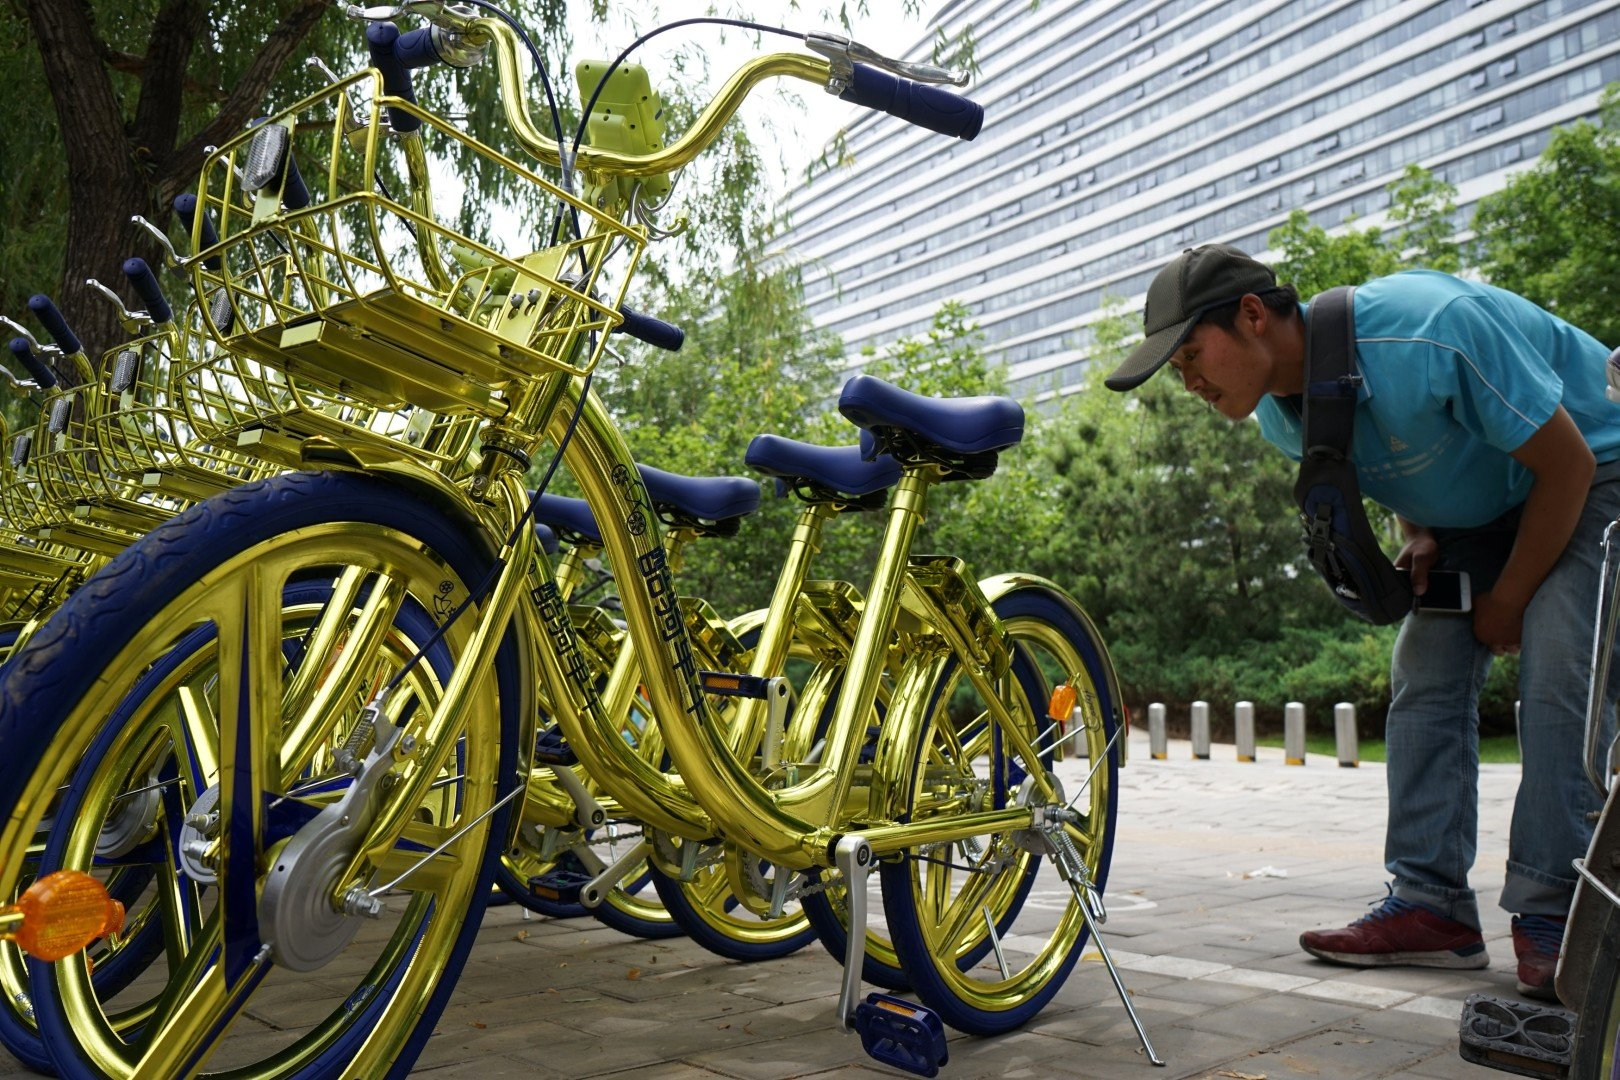 Chinese Bike-sharing services attract more than 100 million